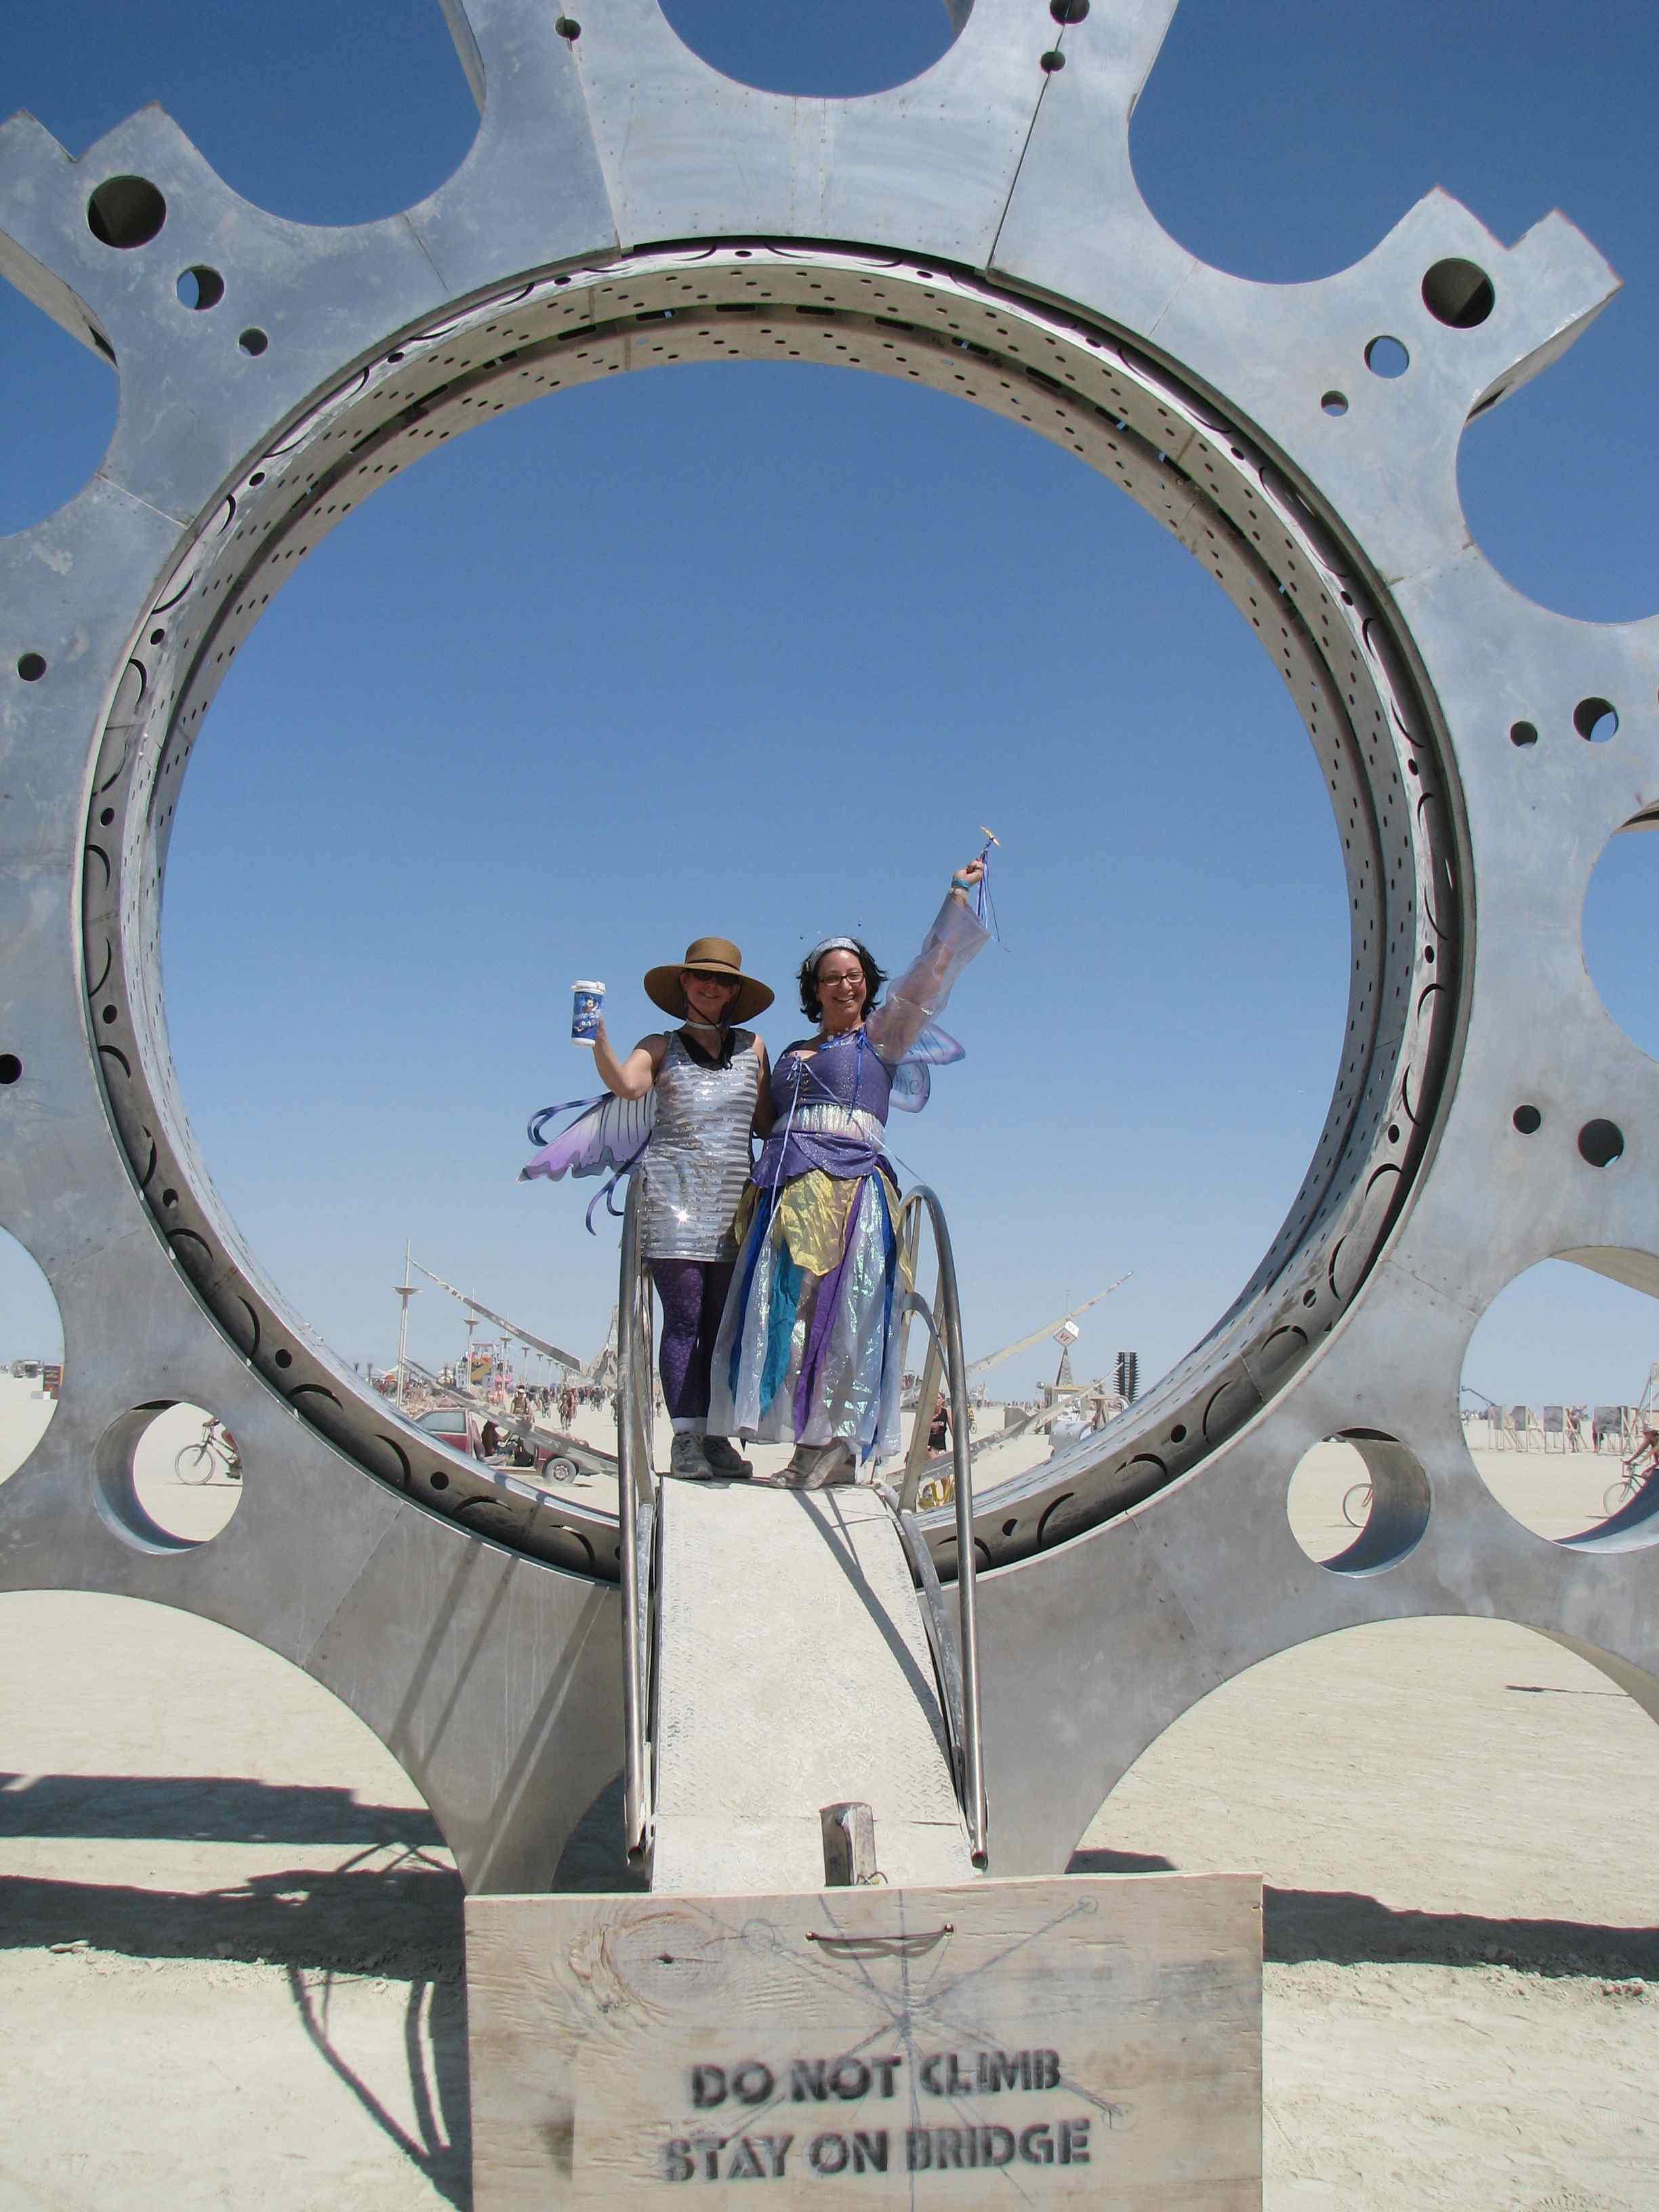 Isis and Supernova in the Metal Ring Sculpture-Burning Man 2011